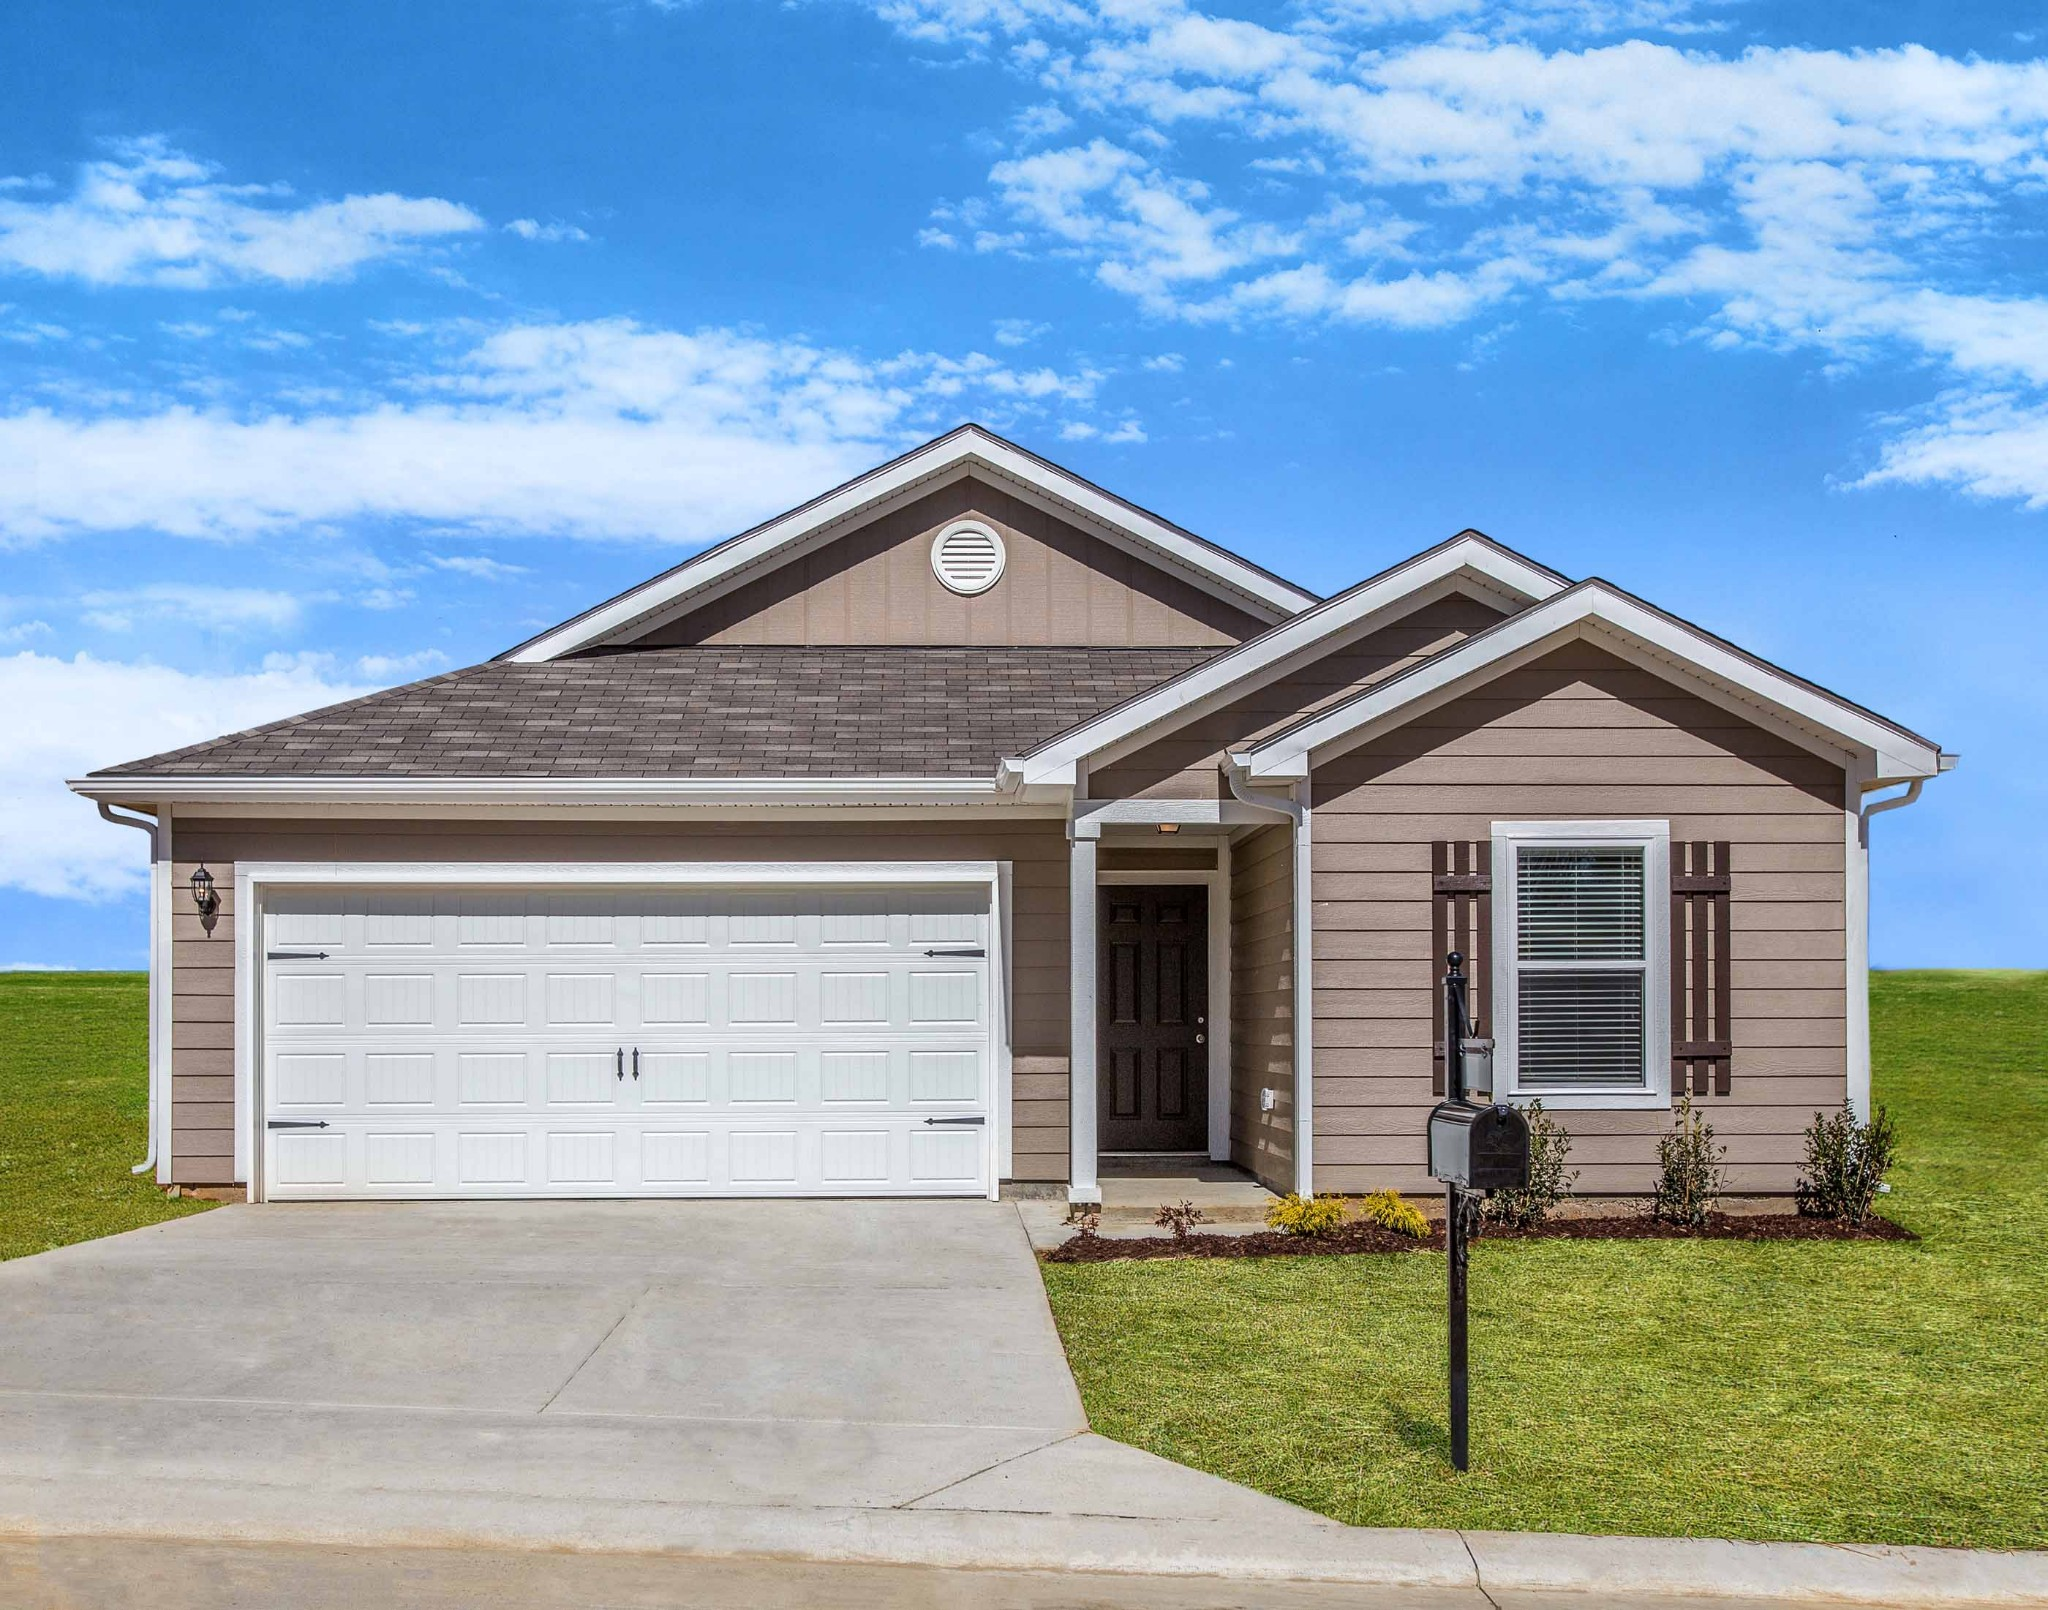 Enjoy single-story living in the Clairborne plan at Honey Farms! This beautiful home has 3 bedrooms, 2 full baths, a large, open layout and an attached 2-car garage, all on one story! In addition, this home comes with an abundance of included upgrades at no extra cost.